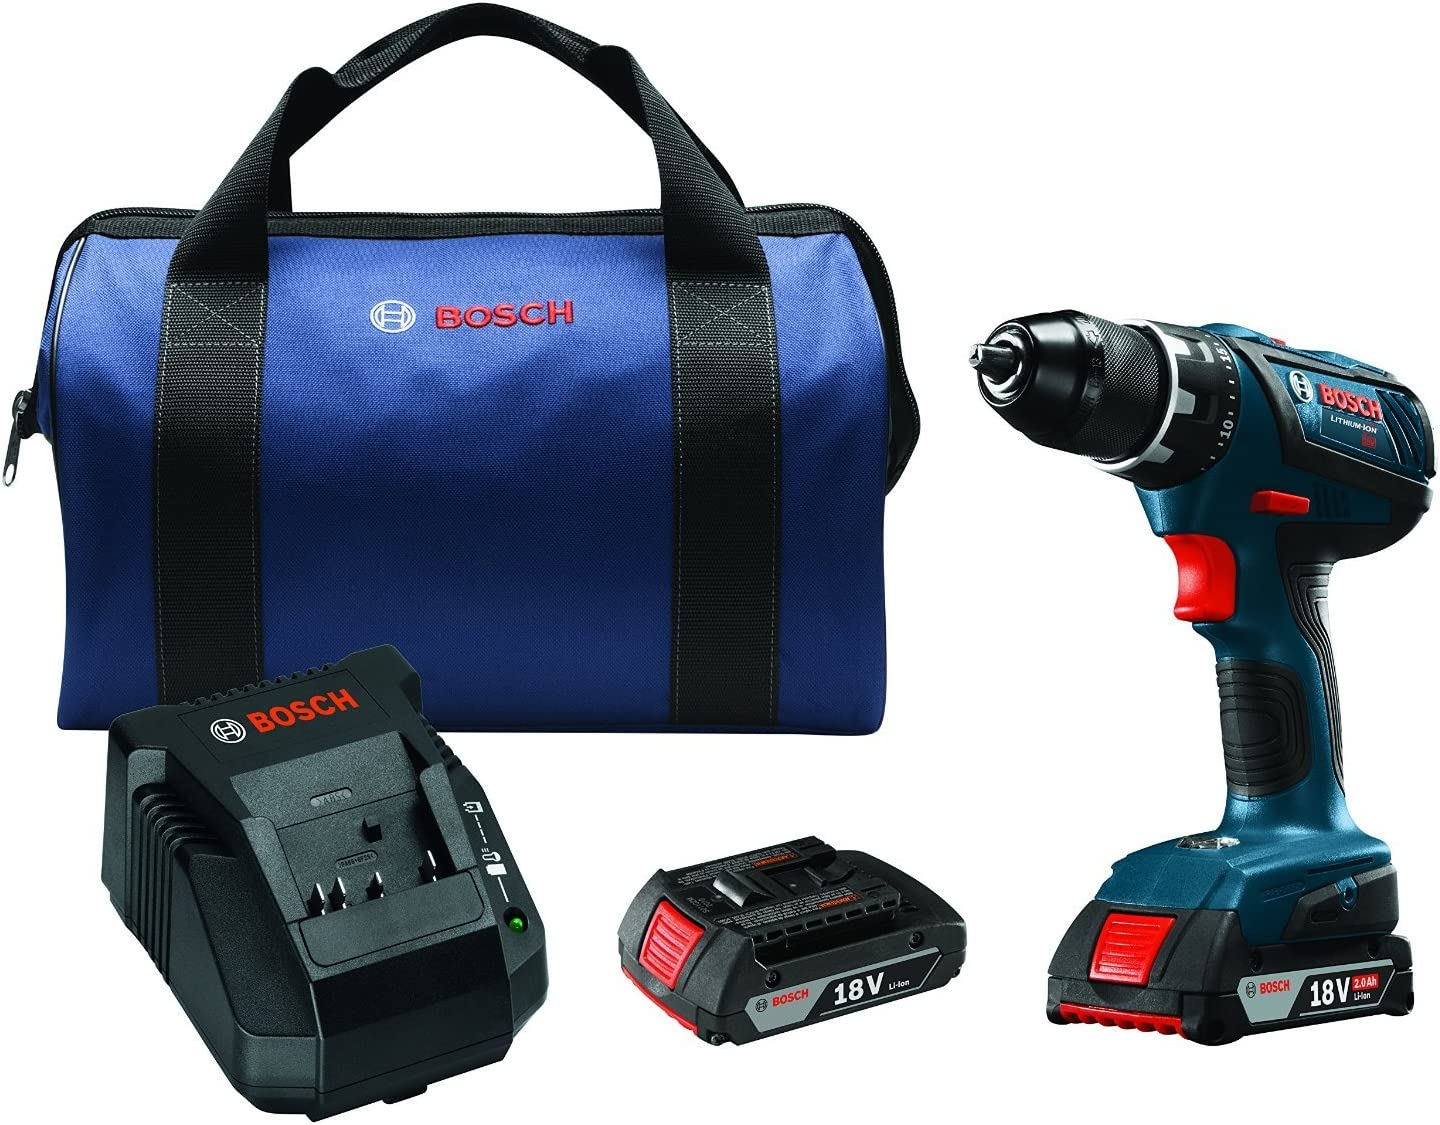 Bosch 18V Compact Tough ½ In. Drill/Driver Kit DDS181A-02 with SlimPack Batteries